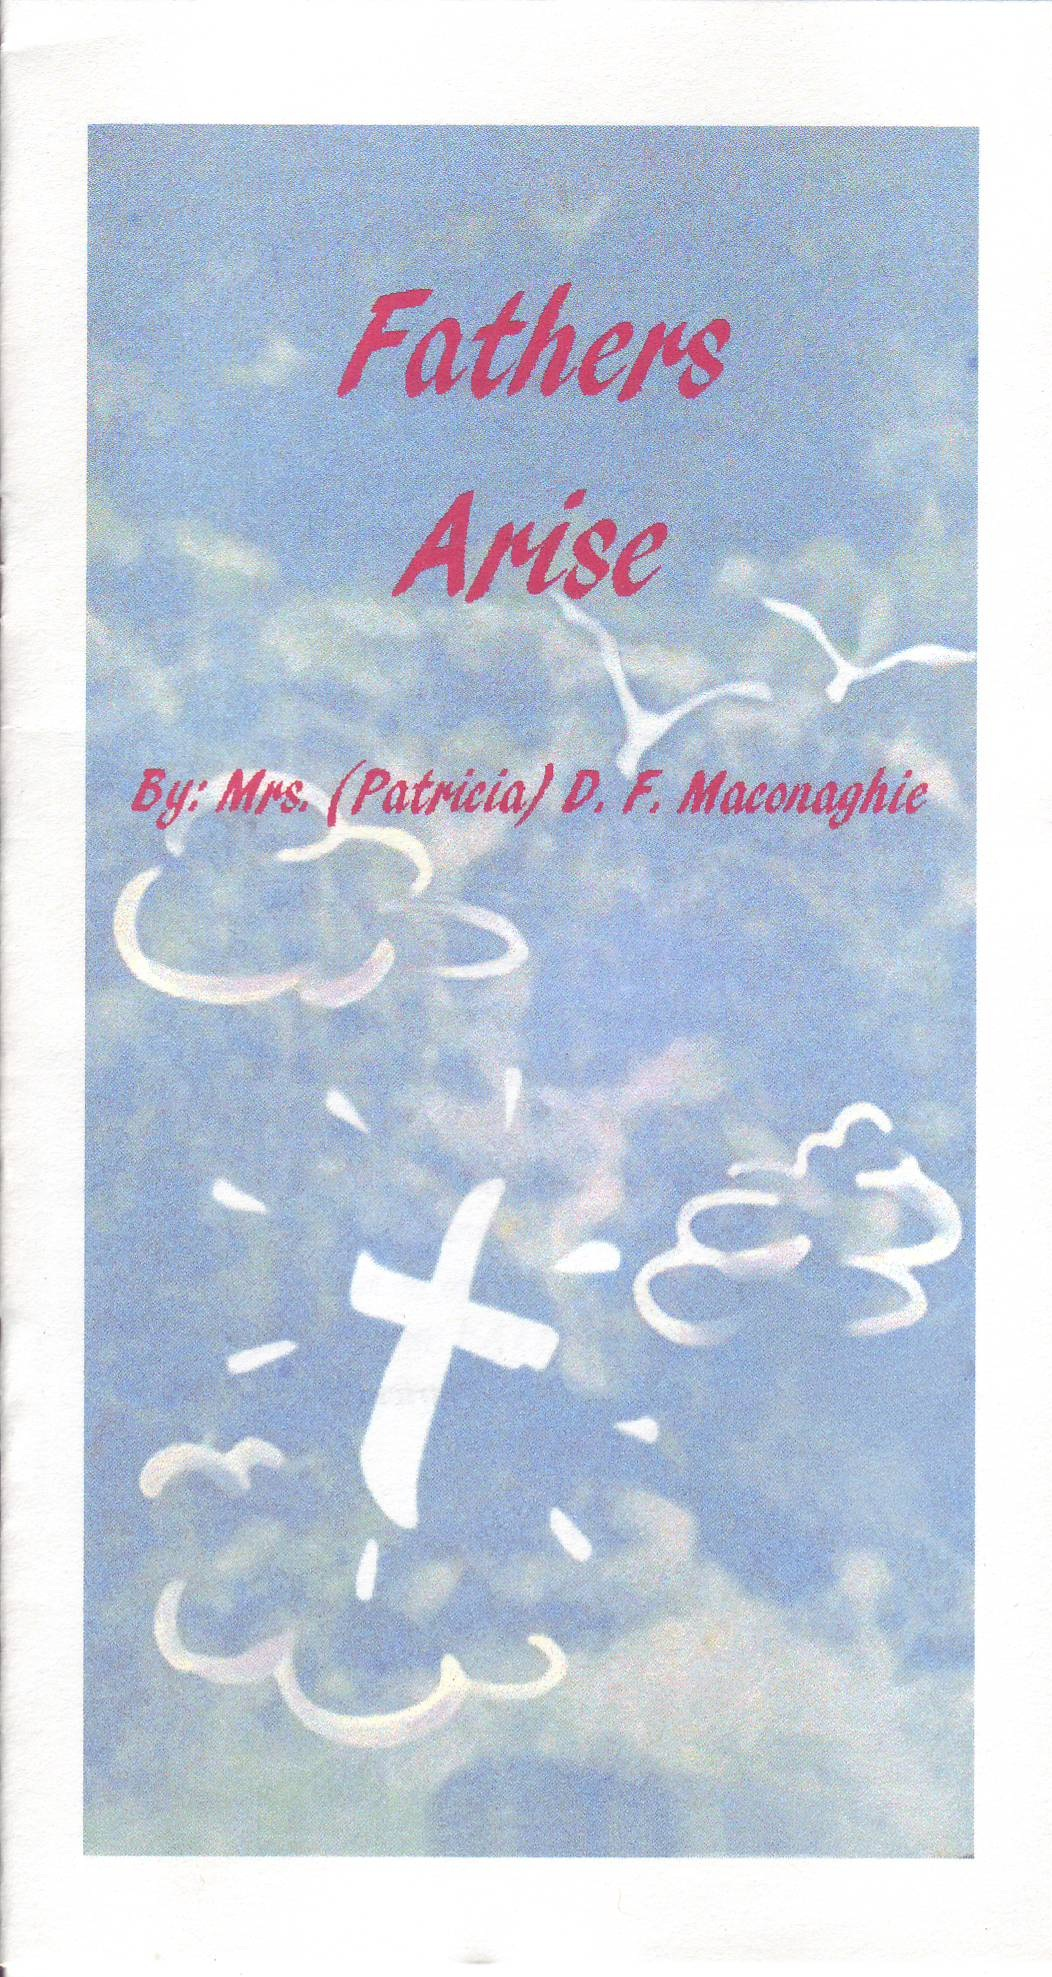 Fathers Arise  -   Poems & Hymns  - Mrs. D. Maconaghie